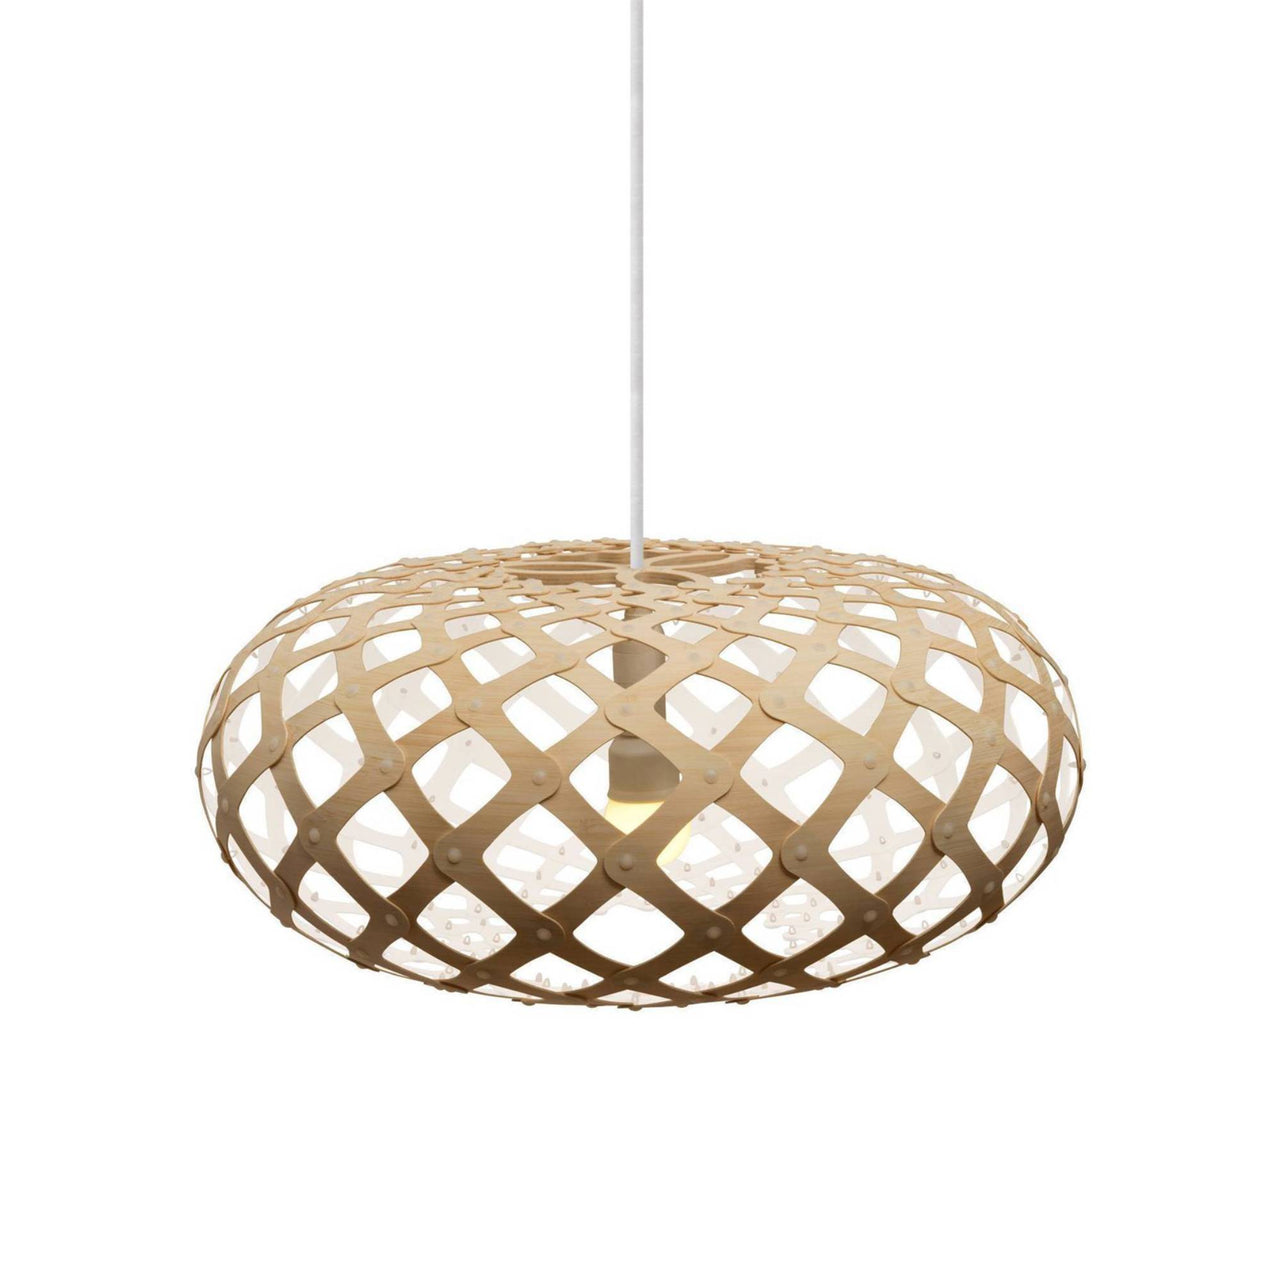 Kina Pendant Light: 440 + White